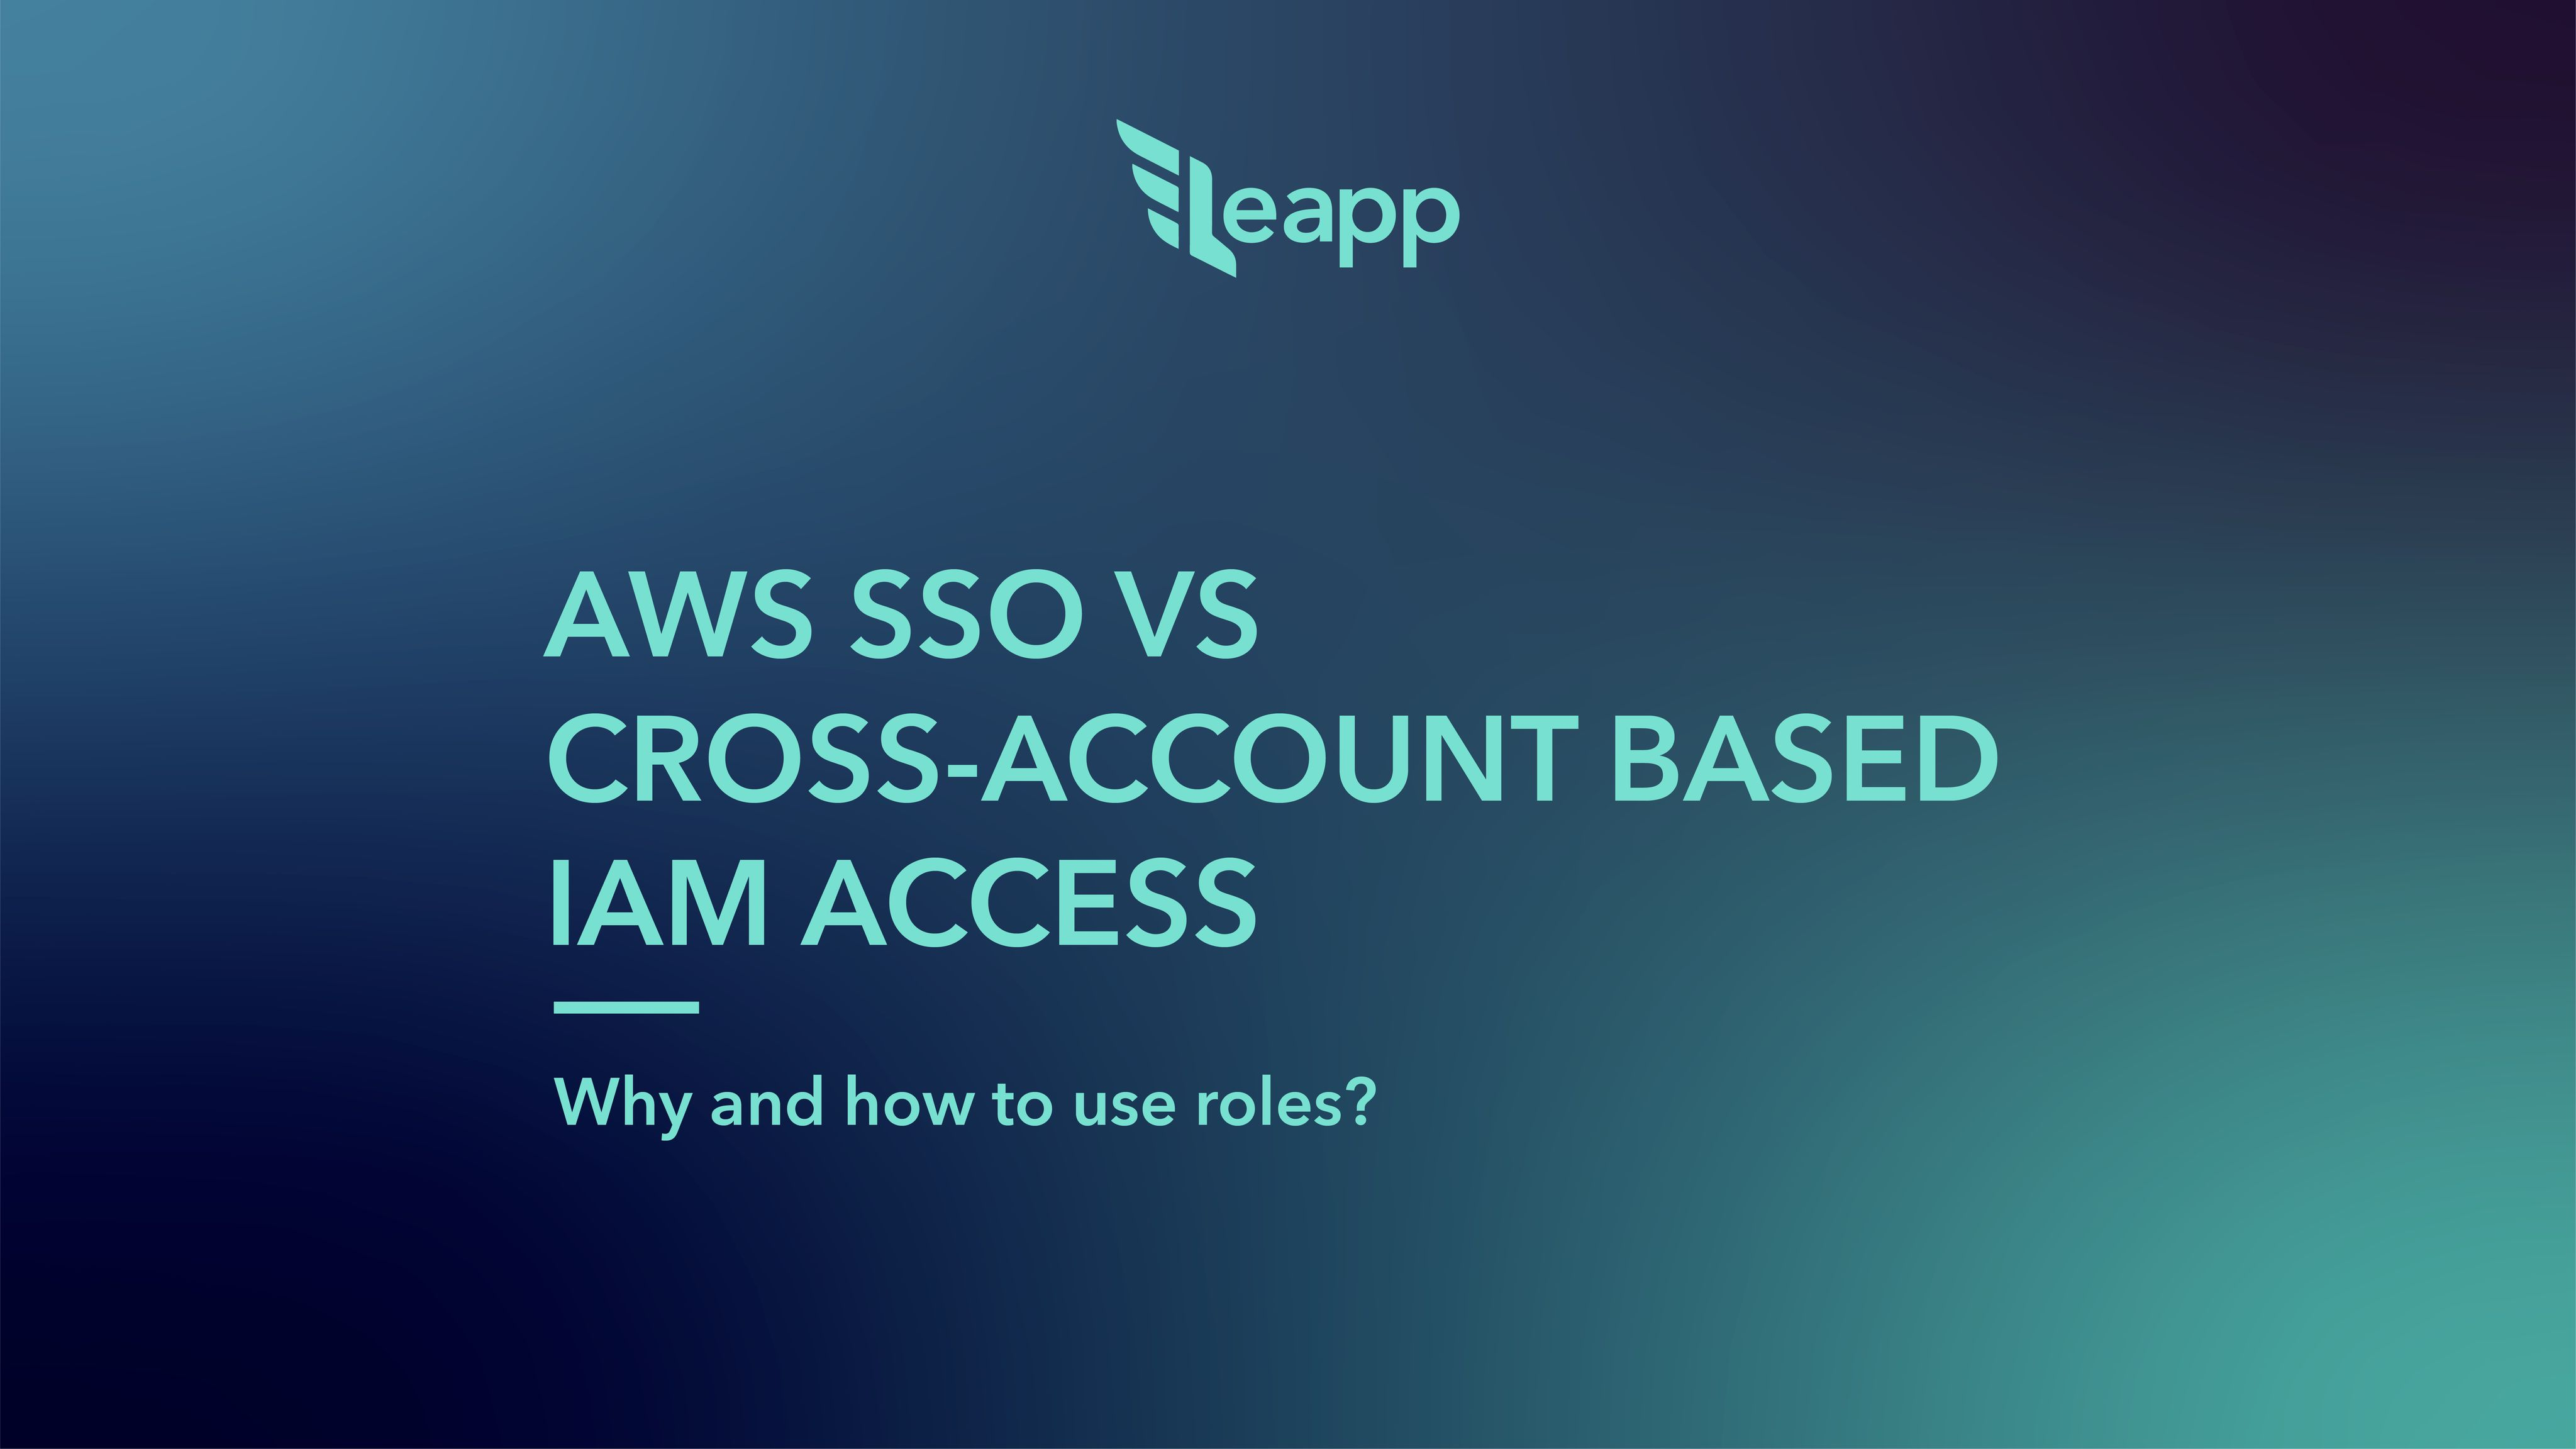 /an-introduction-to-aws-sso-vs-cross-account-role-based-iam-access-60263zc1 feature image